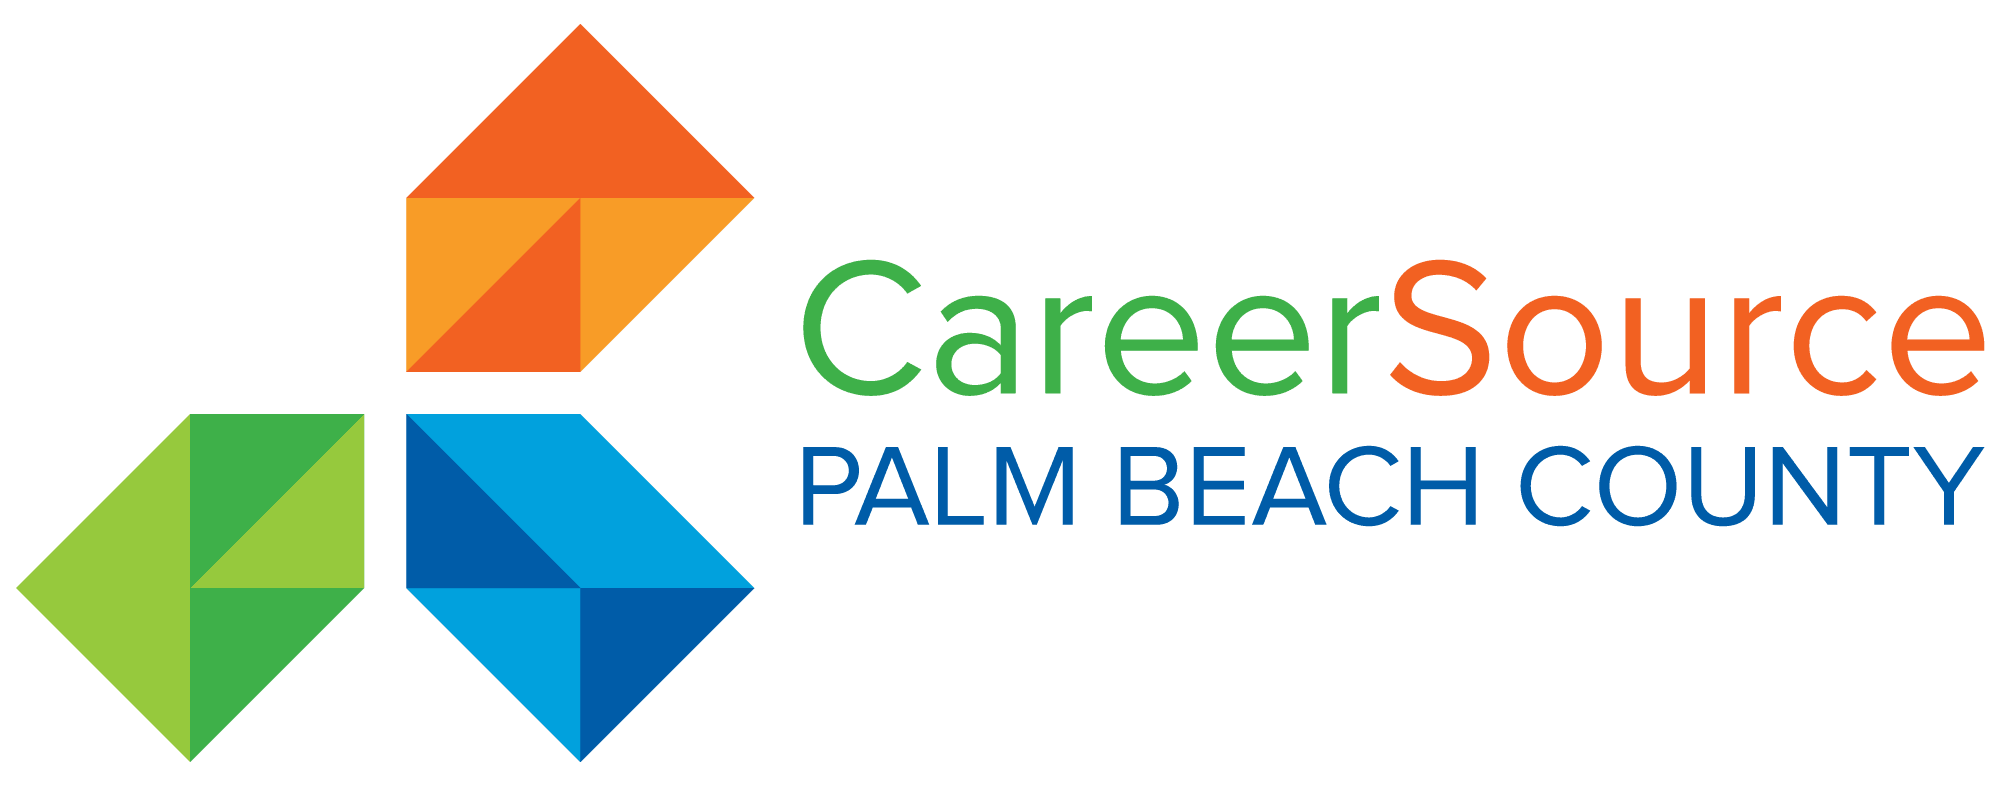 Career Source Palm Beach County Logo - Green, Red and Blue arrows pointing inwards with company name Opens in new window